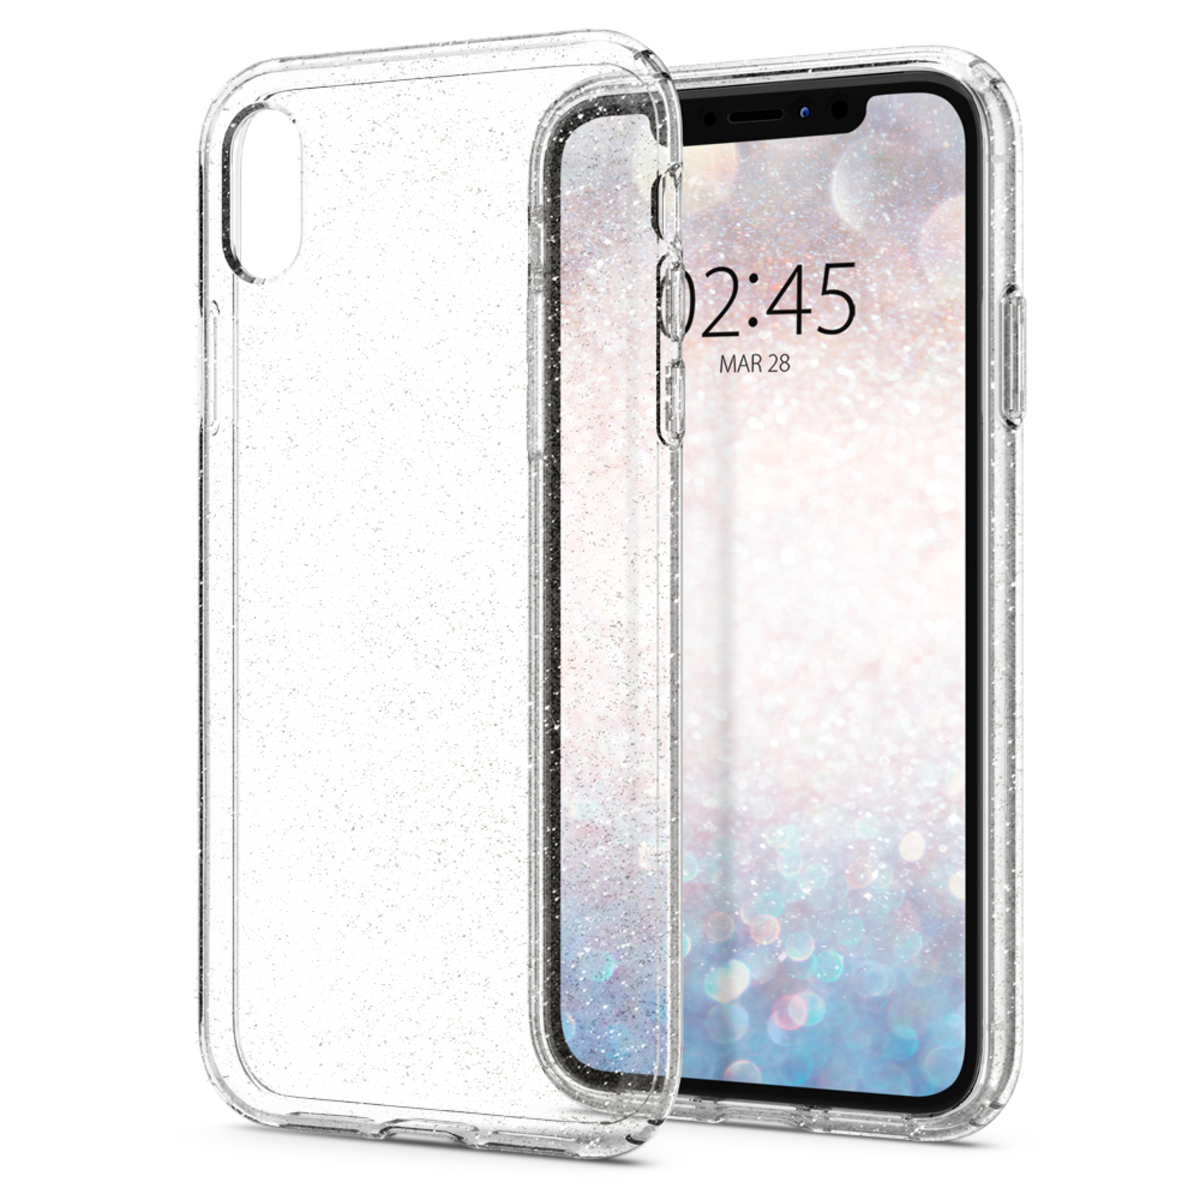 iPhone XR Case Liquid Crystal Glitter - Crystal Quartz